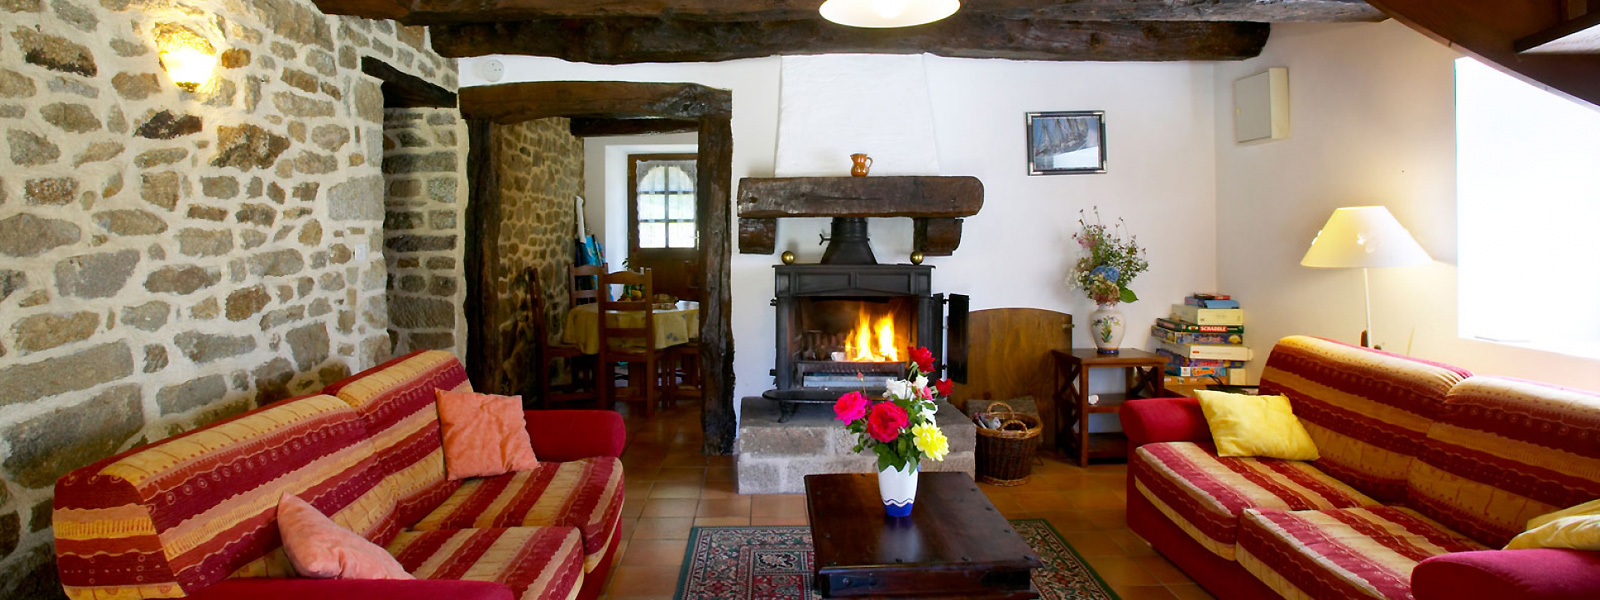 https://www.selectcottages.com/sites/default/files/revslider/image/lagarenne-interior-fire.jpg